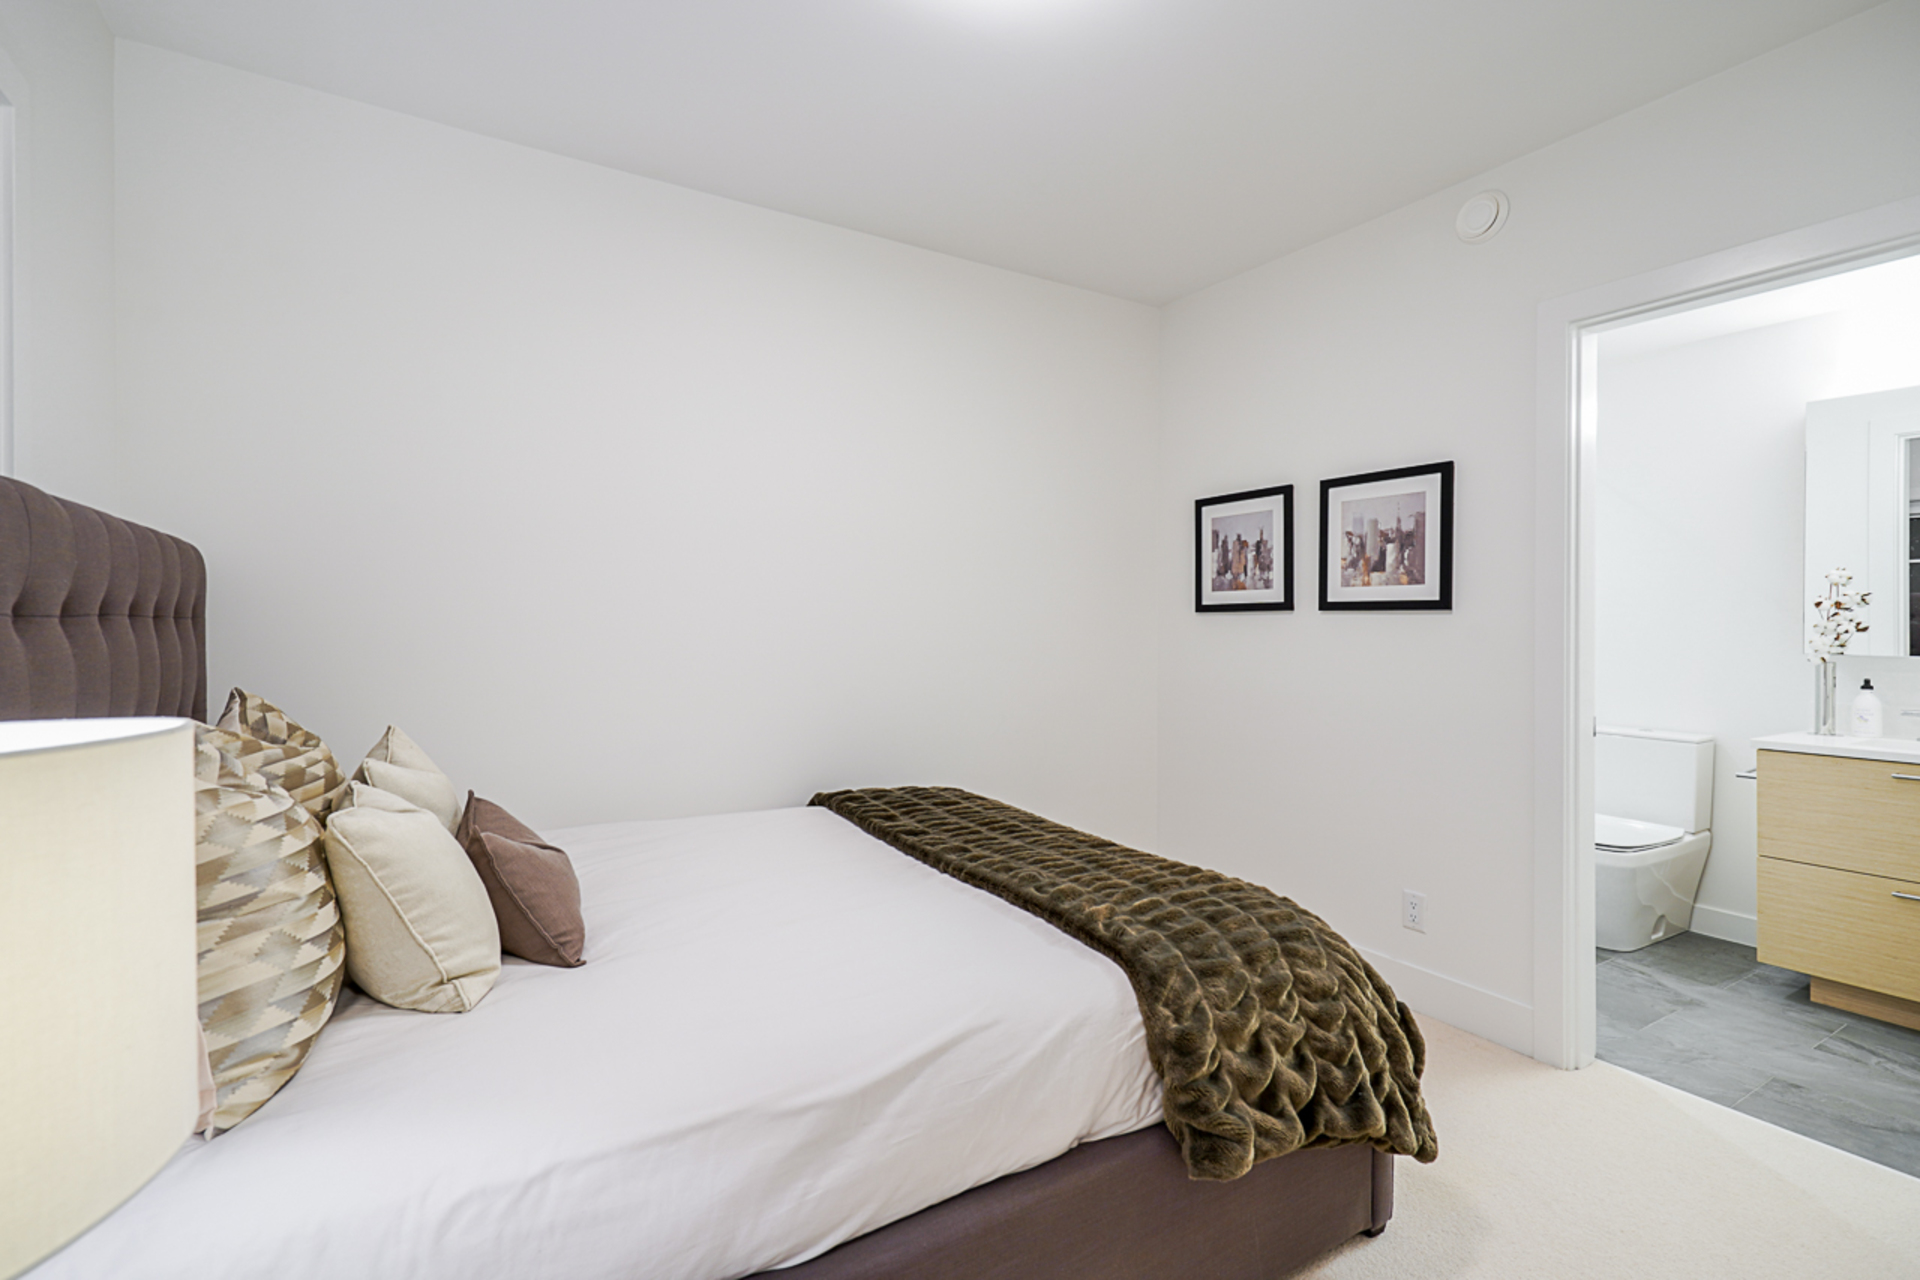 unit-11-1133-rigewood-drive-north-vancouver-26 at 11 - 1133 Ridgewood Drive, Edgemont, North Vancouver